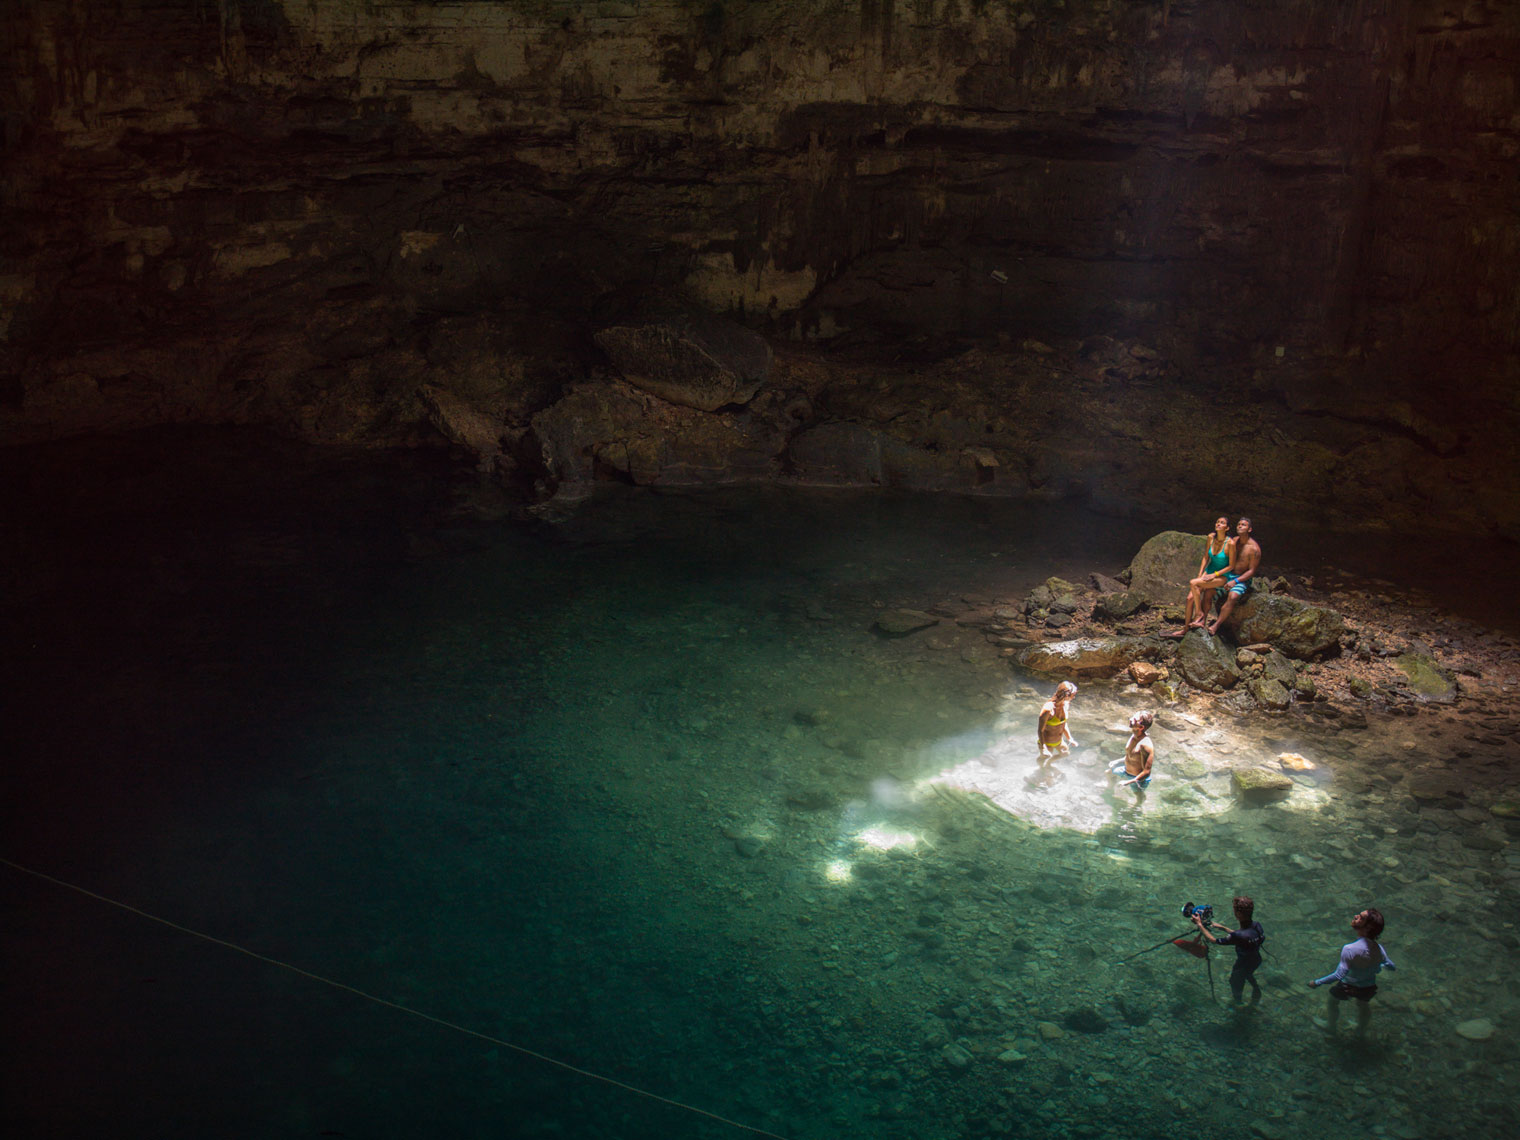 RCI_Cozumel_Dzitnup_Cenote_Swiming_Couples_02_H_01387